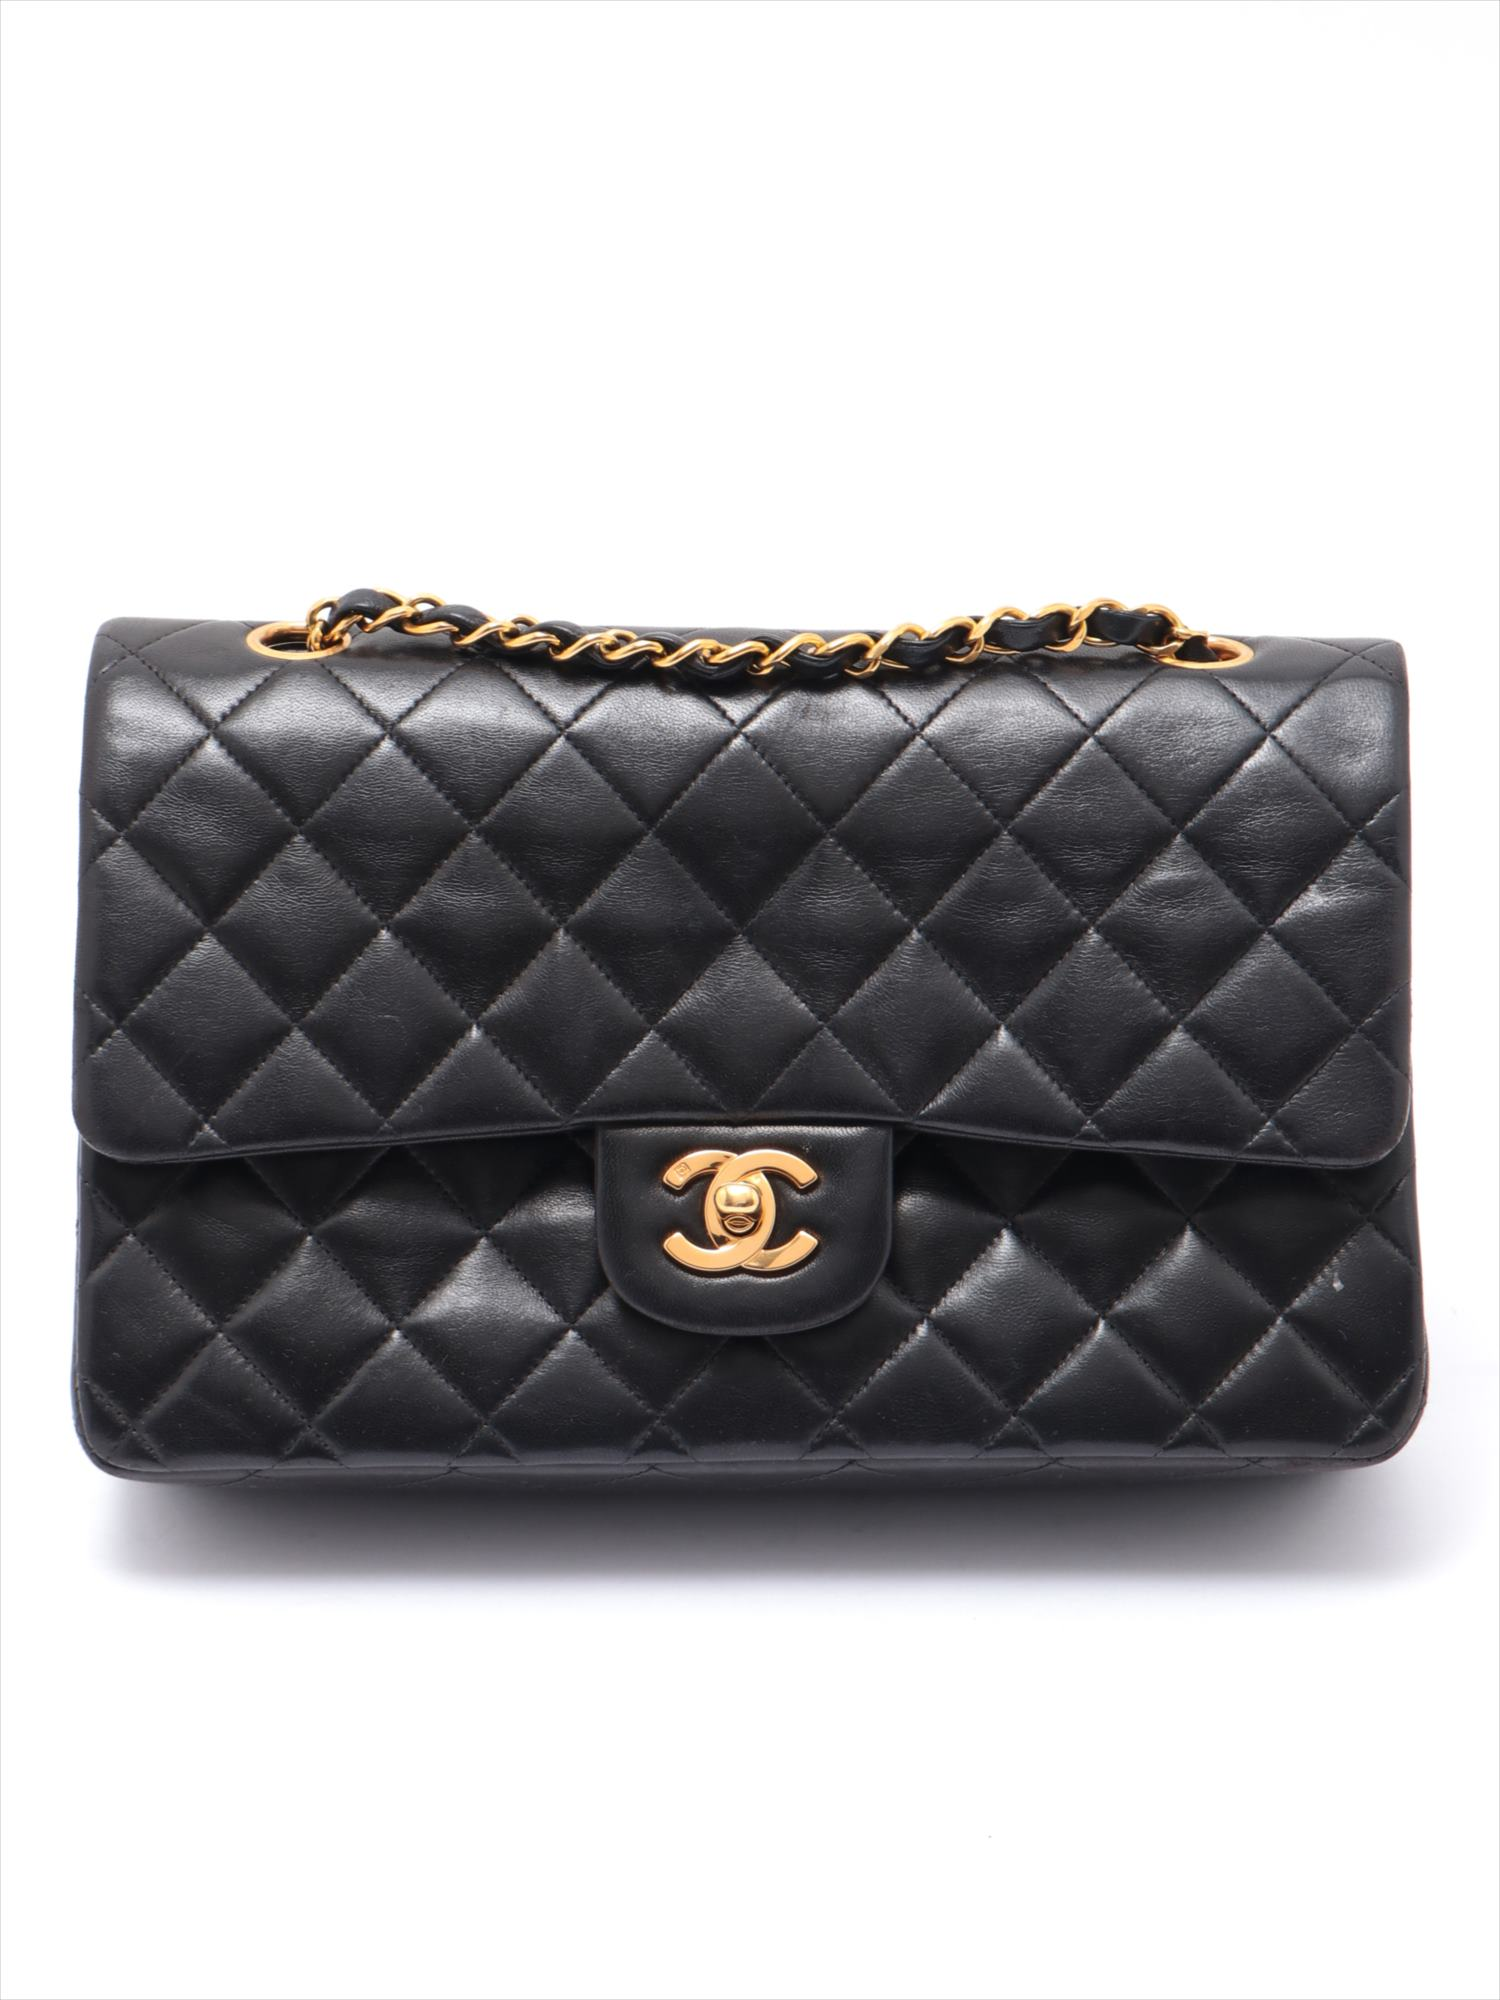 [Used goods] Chanel Matorasse lambskin double flap double chain Tote Bag Black